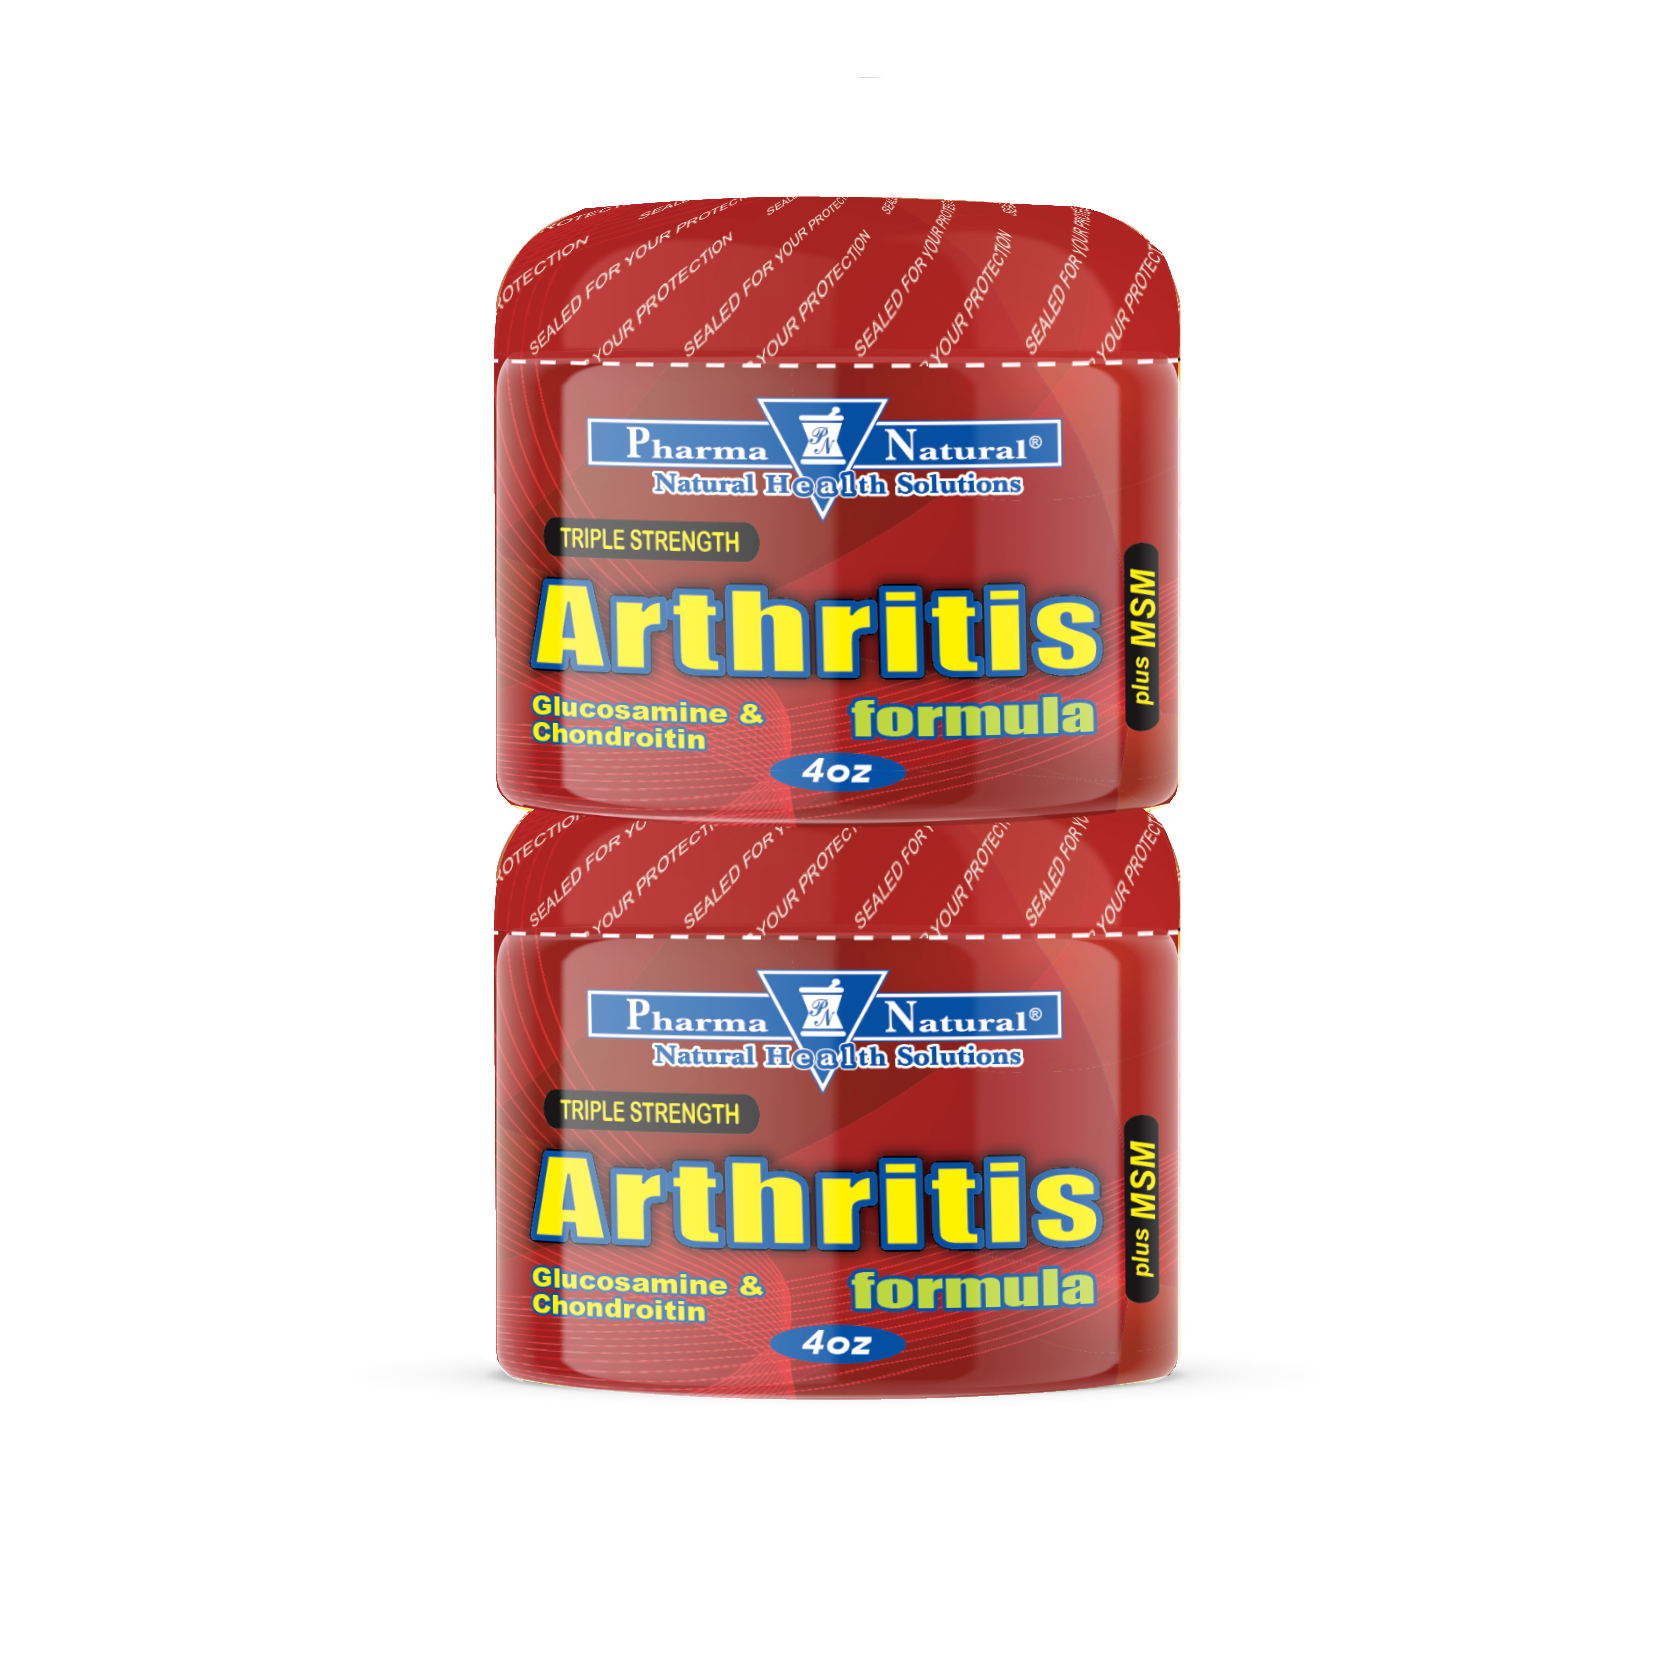 Arthritis Cream plus MSM by PN - 2 (4oz ), Relieve discomfort associated  with pain now with added MSM